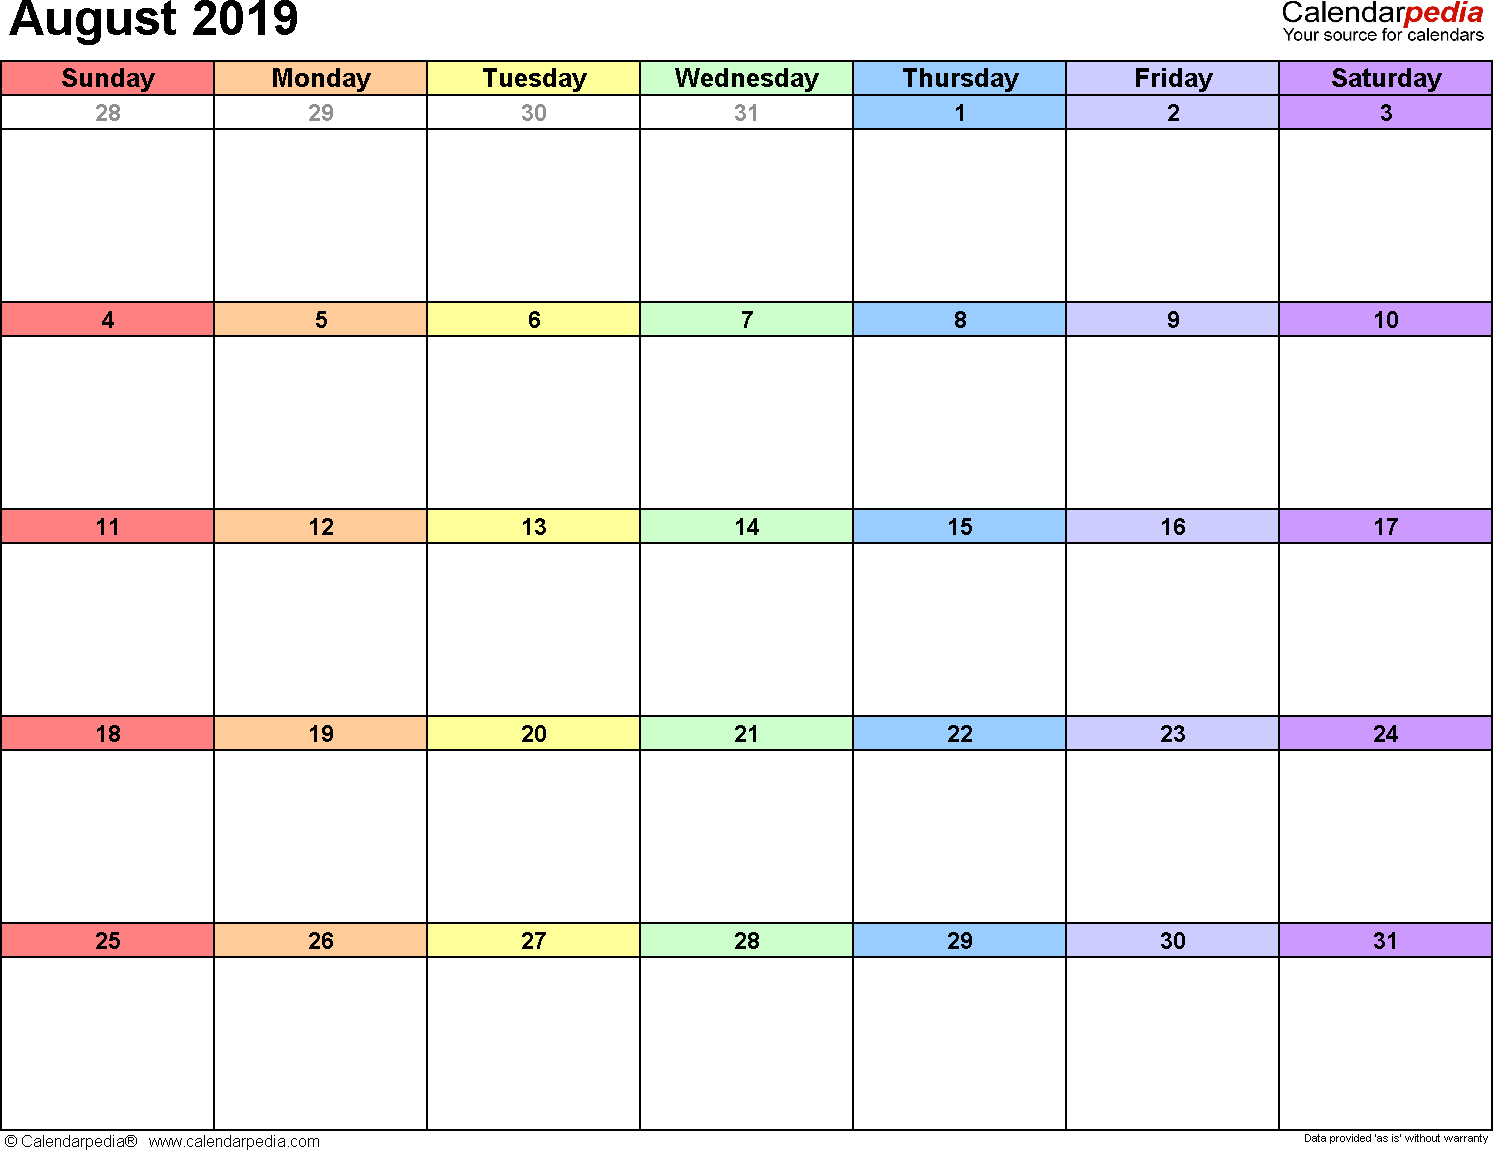 Calendarpedia - Your Source For Calendars in Blank August Colorful Calendar